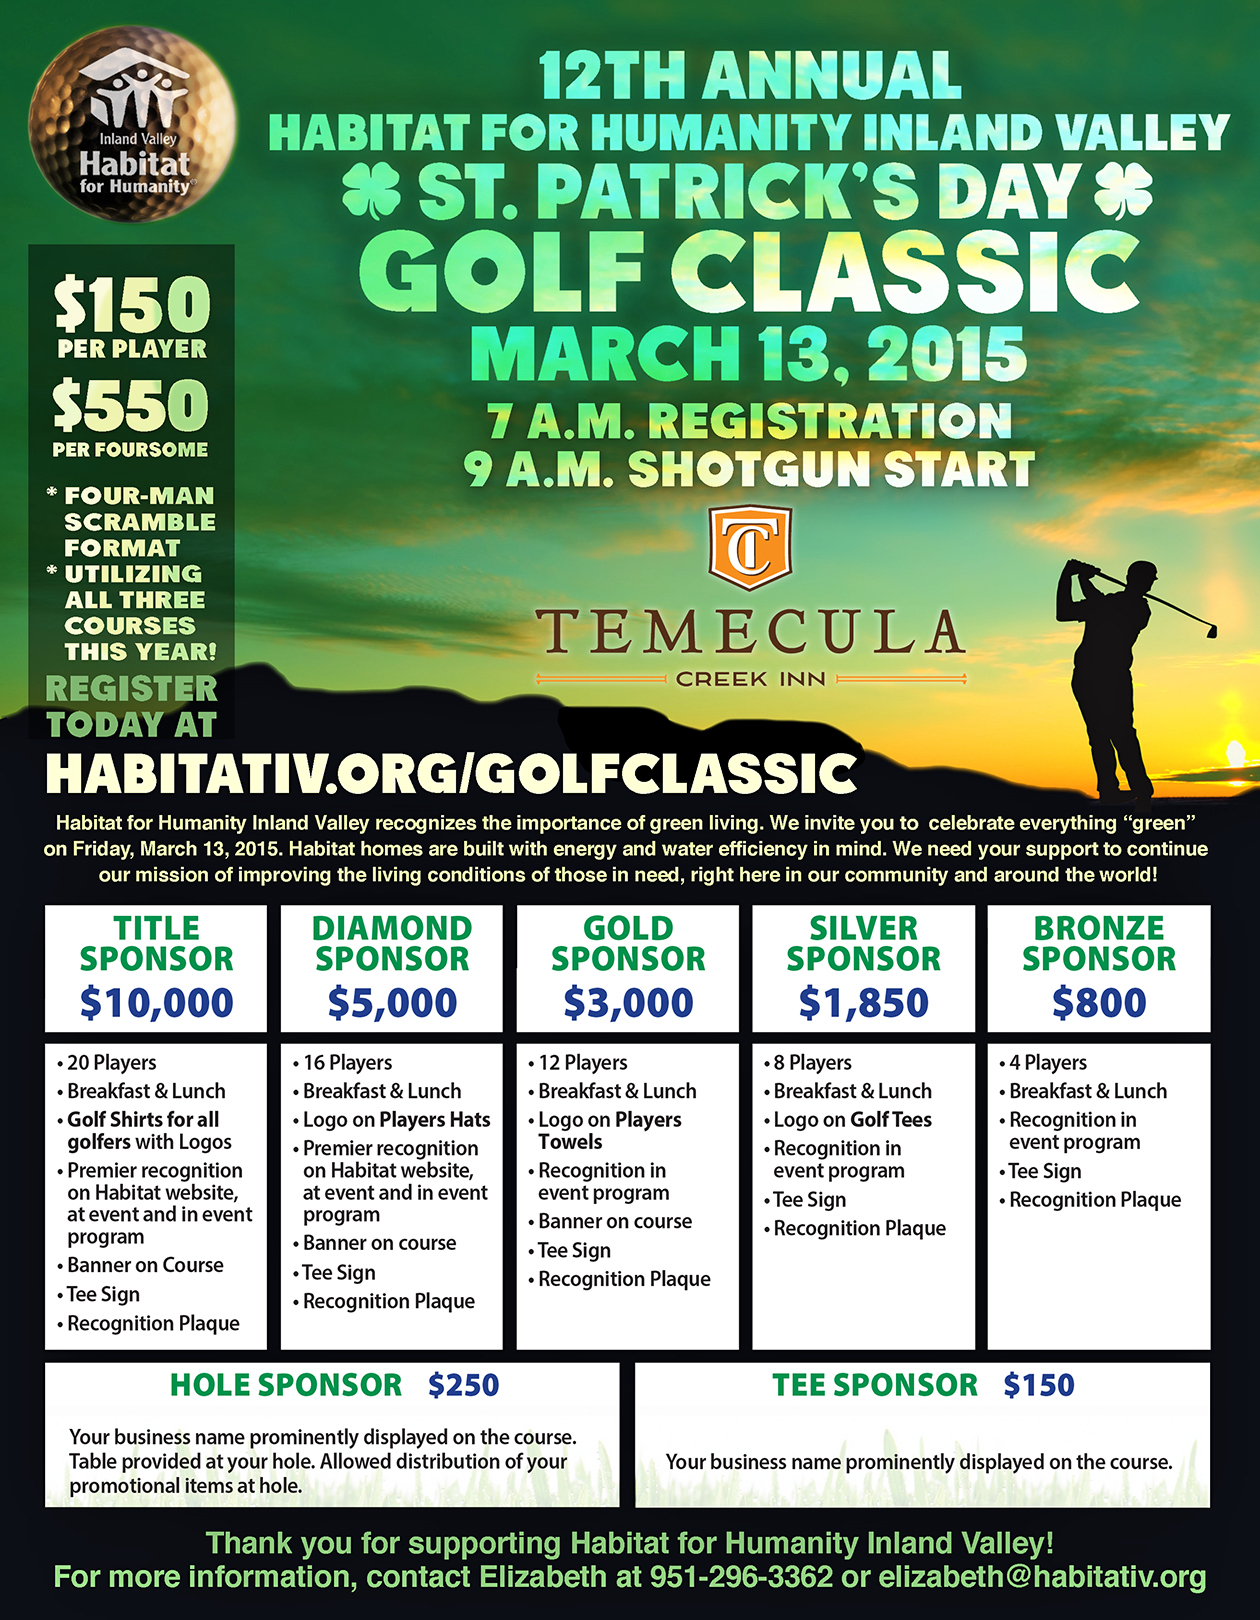 GOLF-CLASSIC-SPONSOR-FLYER-FRONT-LIGHT.jpg